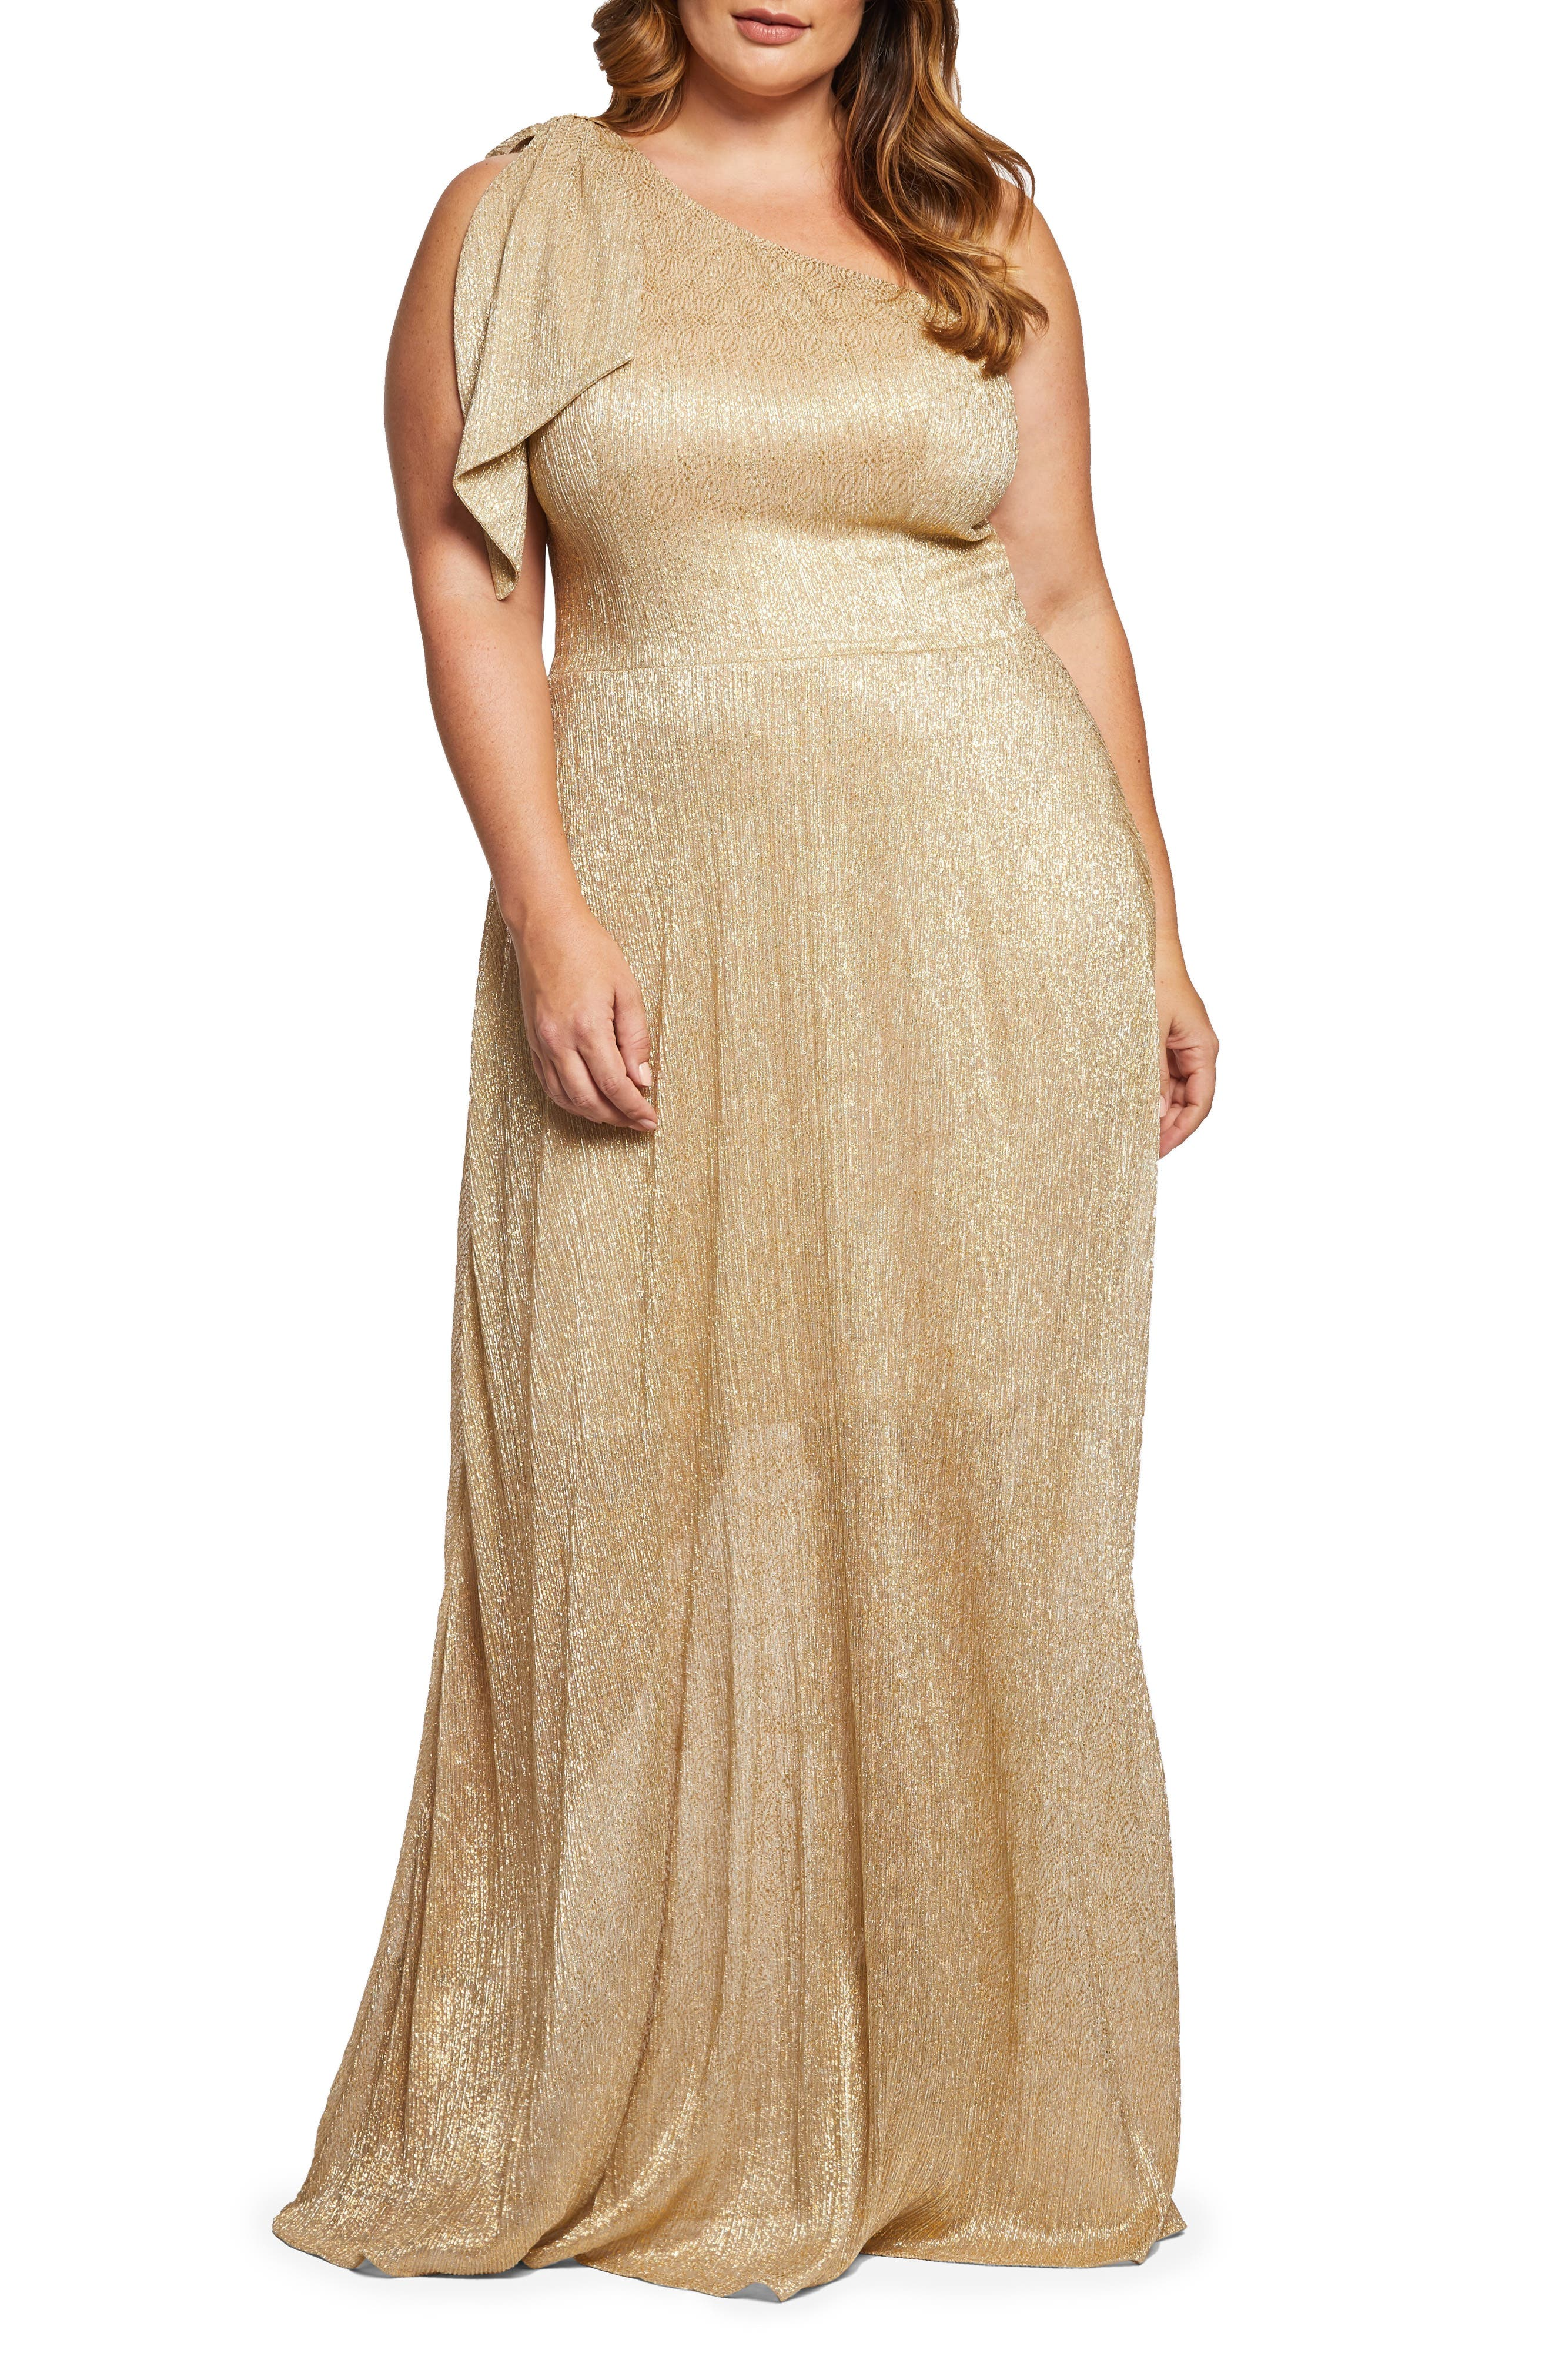 DRESS THE POPULATION Savannah One-Shoulder Gown, Main, color, GOLD